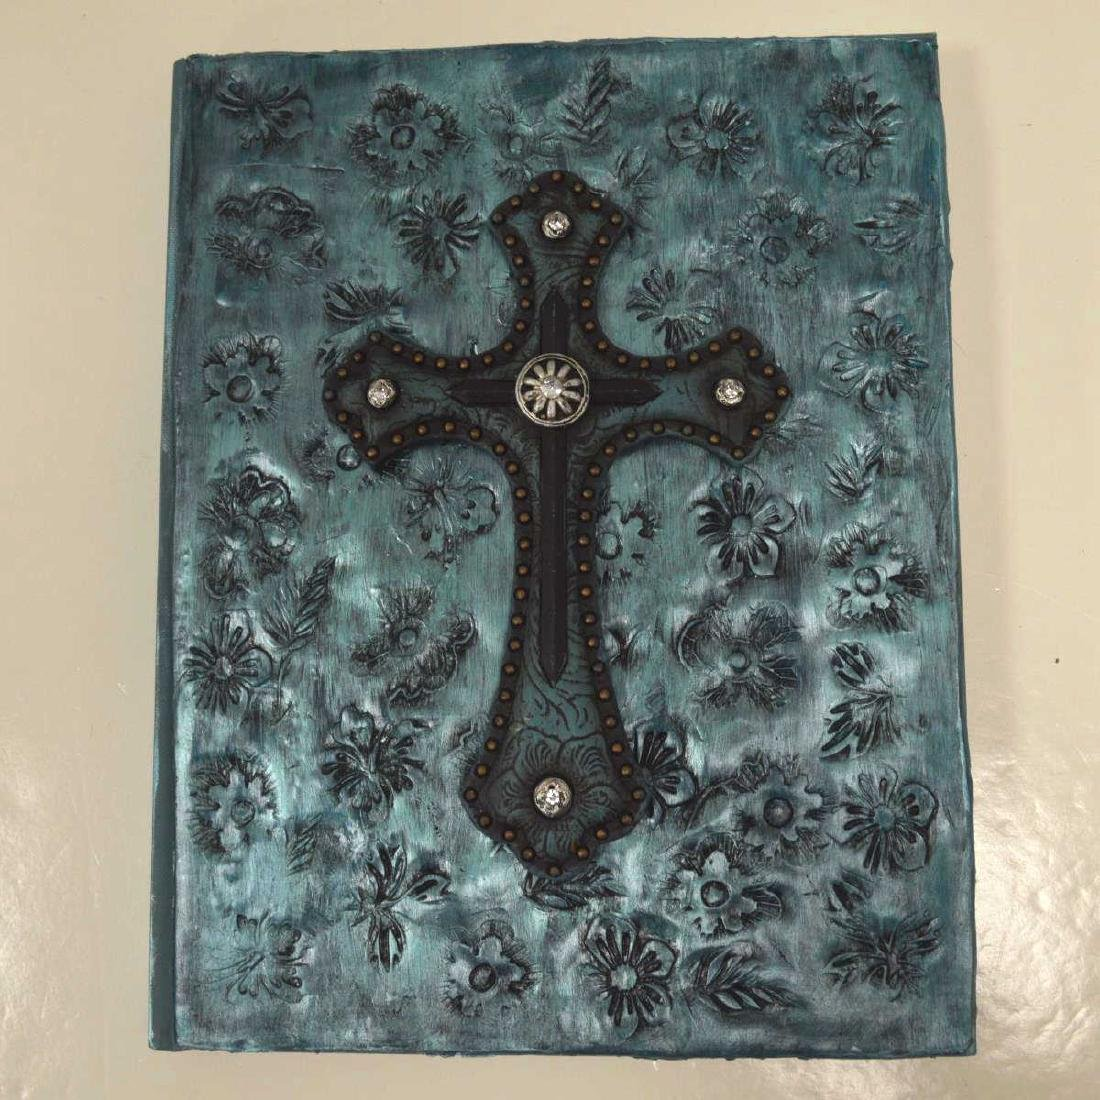 Unique adorned journal by Dena Casteel